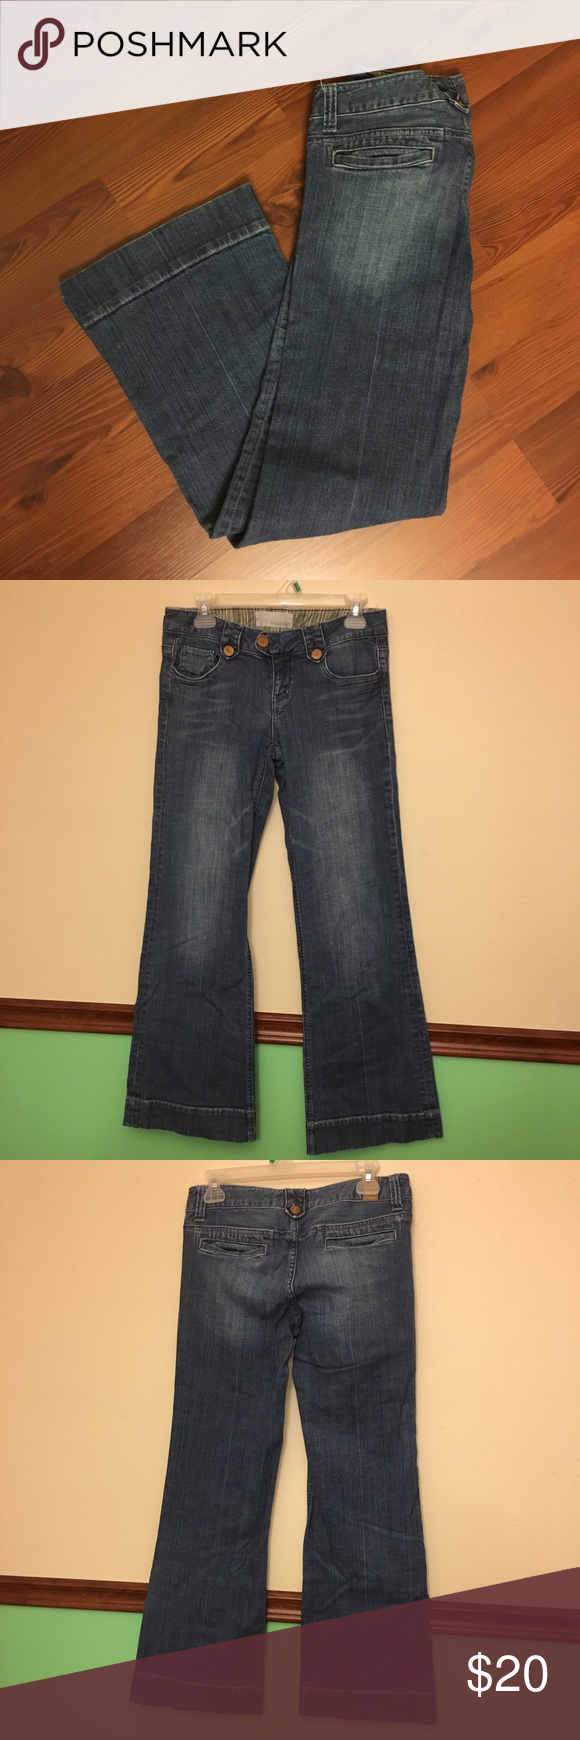 "520d2cc11a6bf Maurice s Flare Jeans - Size 7 8 Medium wash blue jeans - medium wash jean  color. Very nice condition Waist 15"" Inseam 31.5"" Out seam 39"" Leg opening  10.5"" ..."